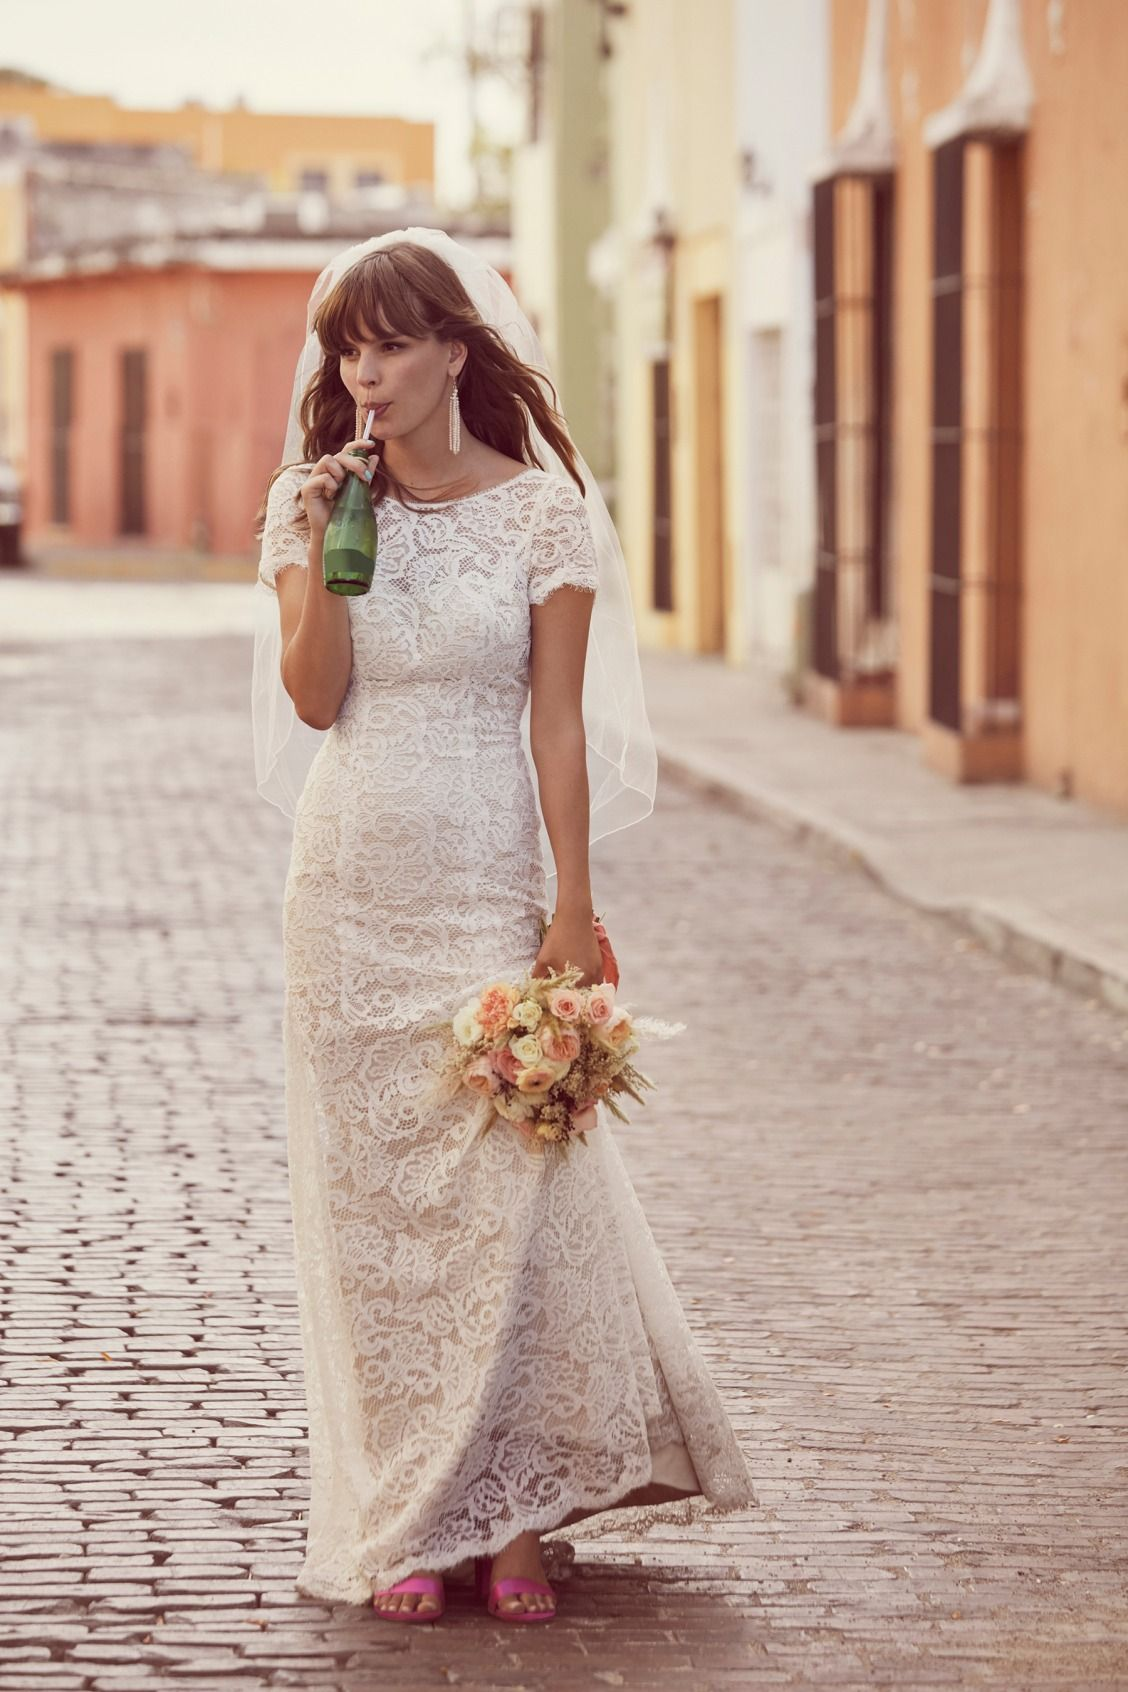 A Little Pick me up For Your Middle Of The Street Wedding The Galina Wedding Dress Collection Is For The F Bridal Dresses Wedding Dresses Galina Wedding Dress